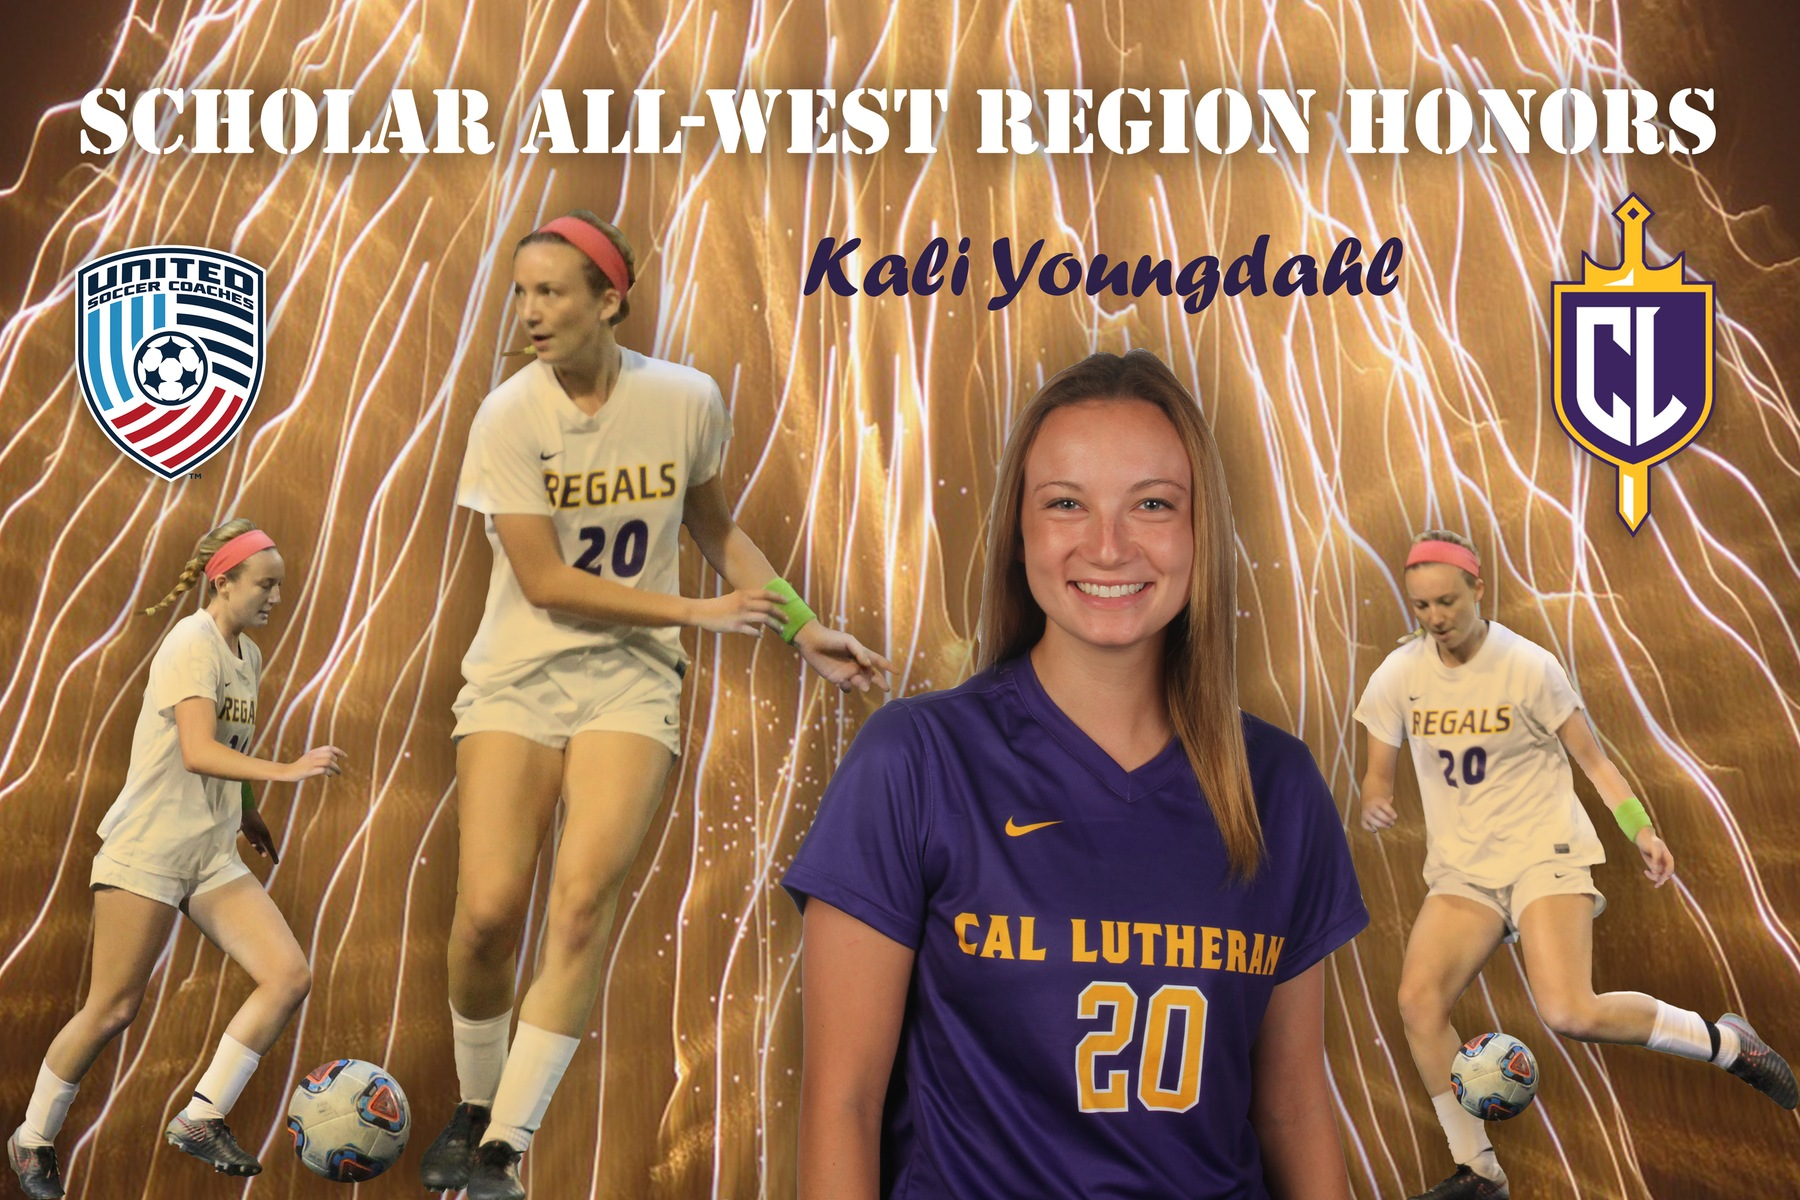 Youngdahl Earns Scholar All-West Region Honors